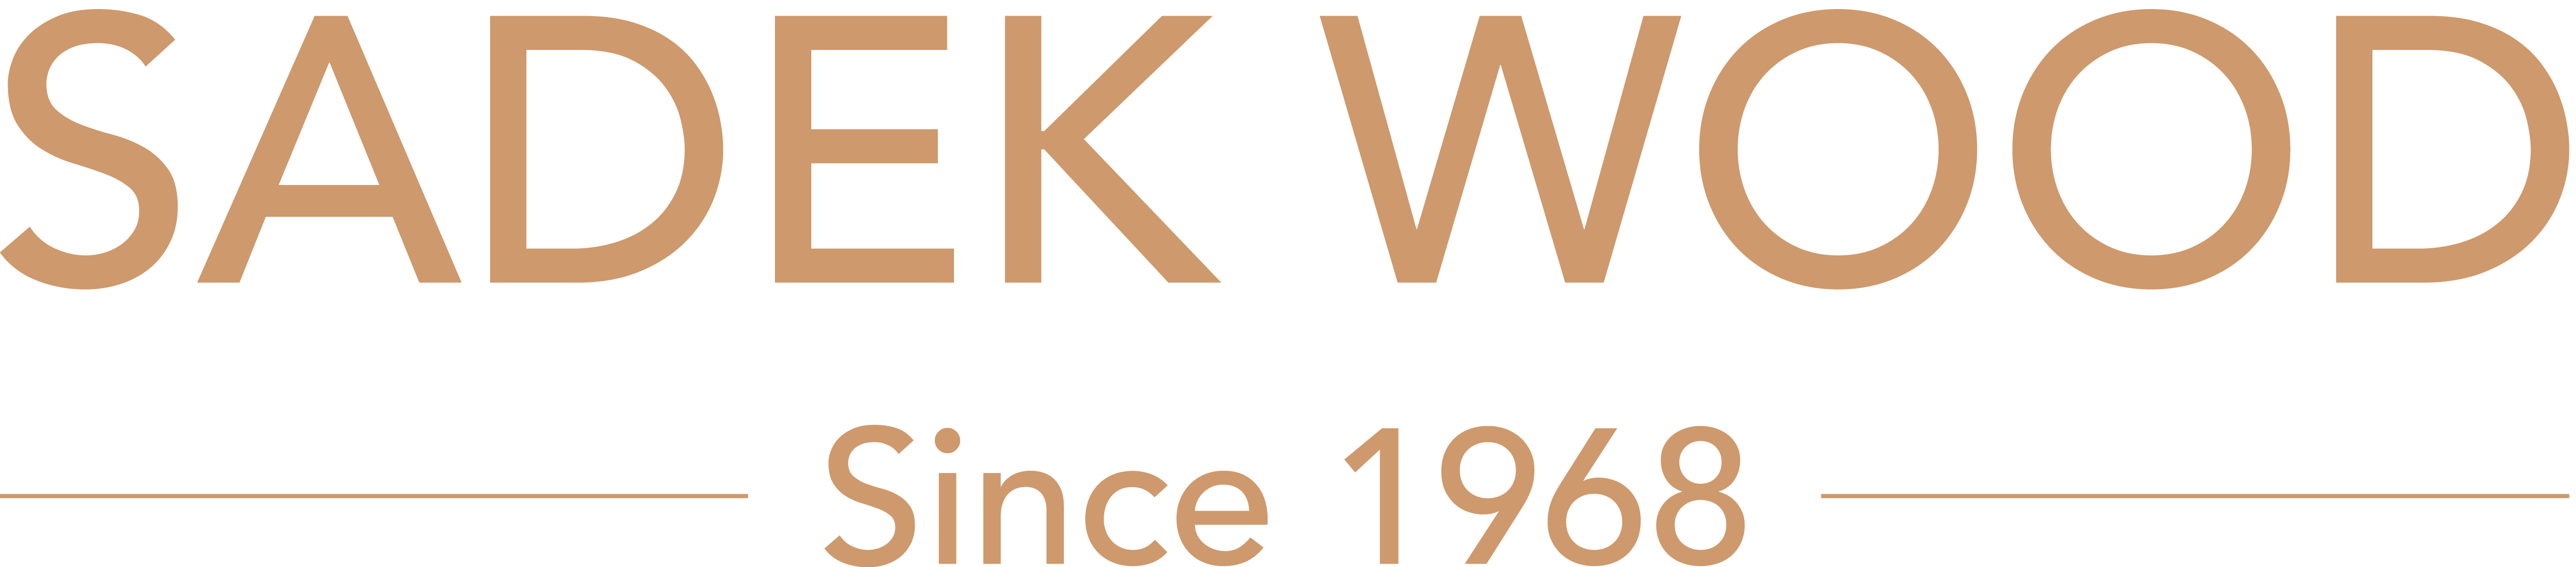 Sadek Wood Logo